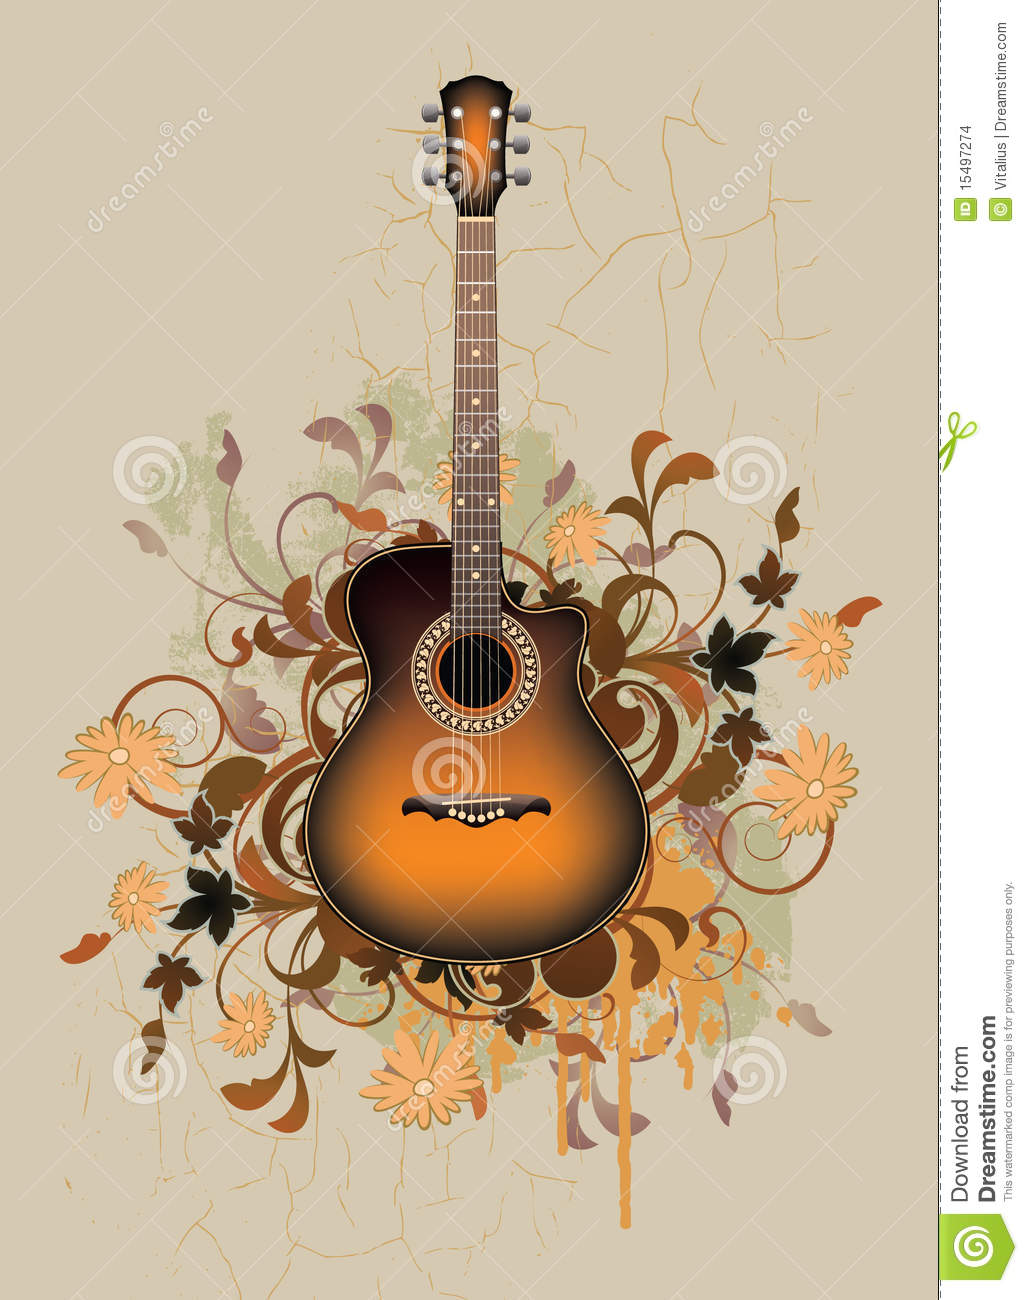 abstrait modifi avec la guitare acoustique orange images stock image 15497274. Black Bedroom Furniture Sets. Home Design Ideas